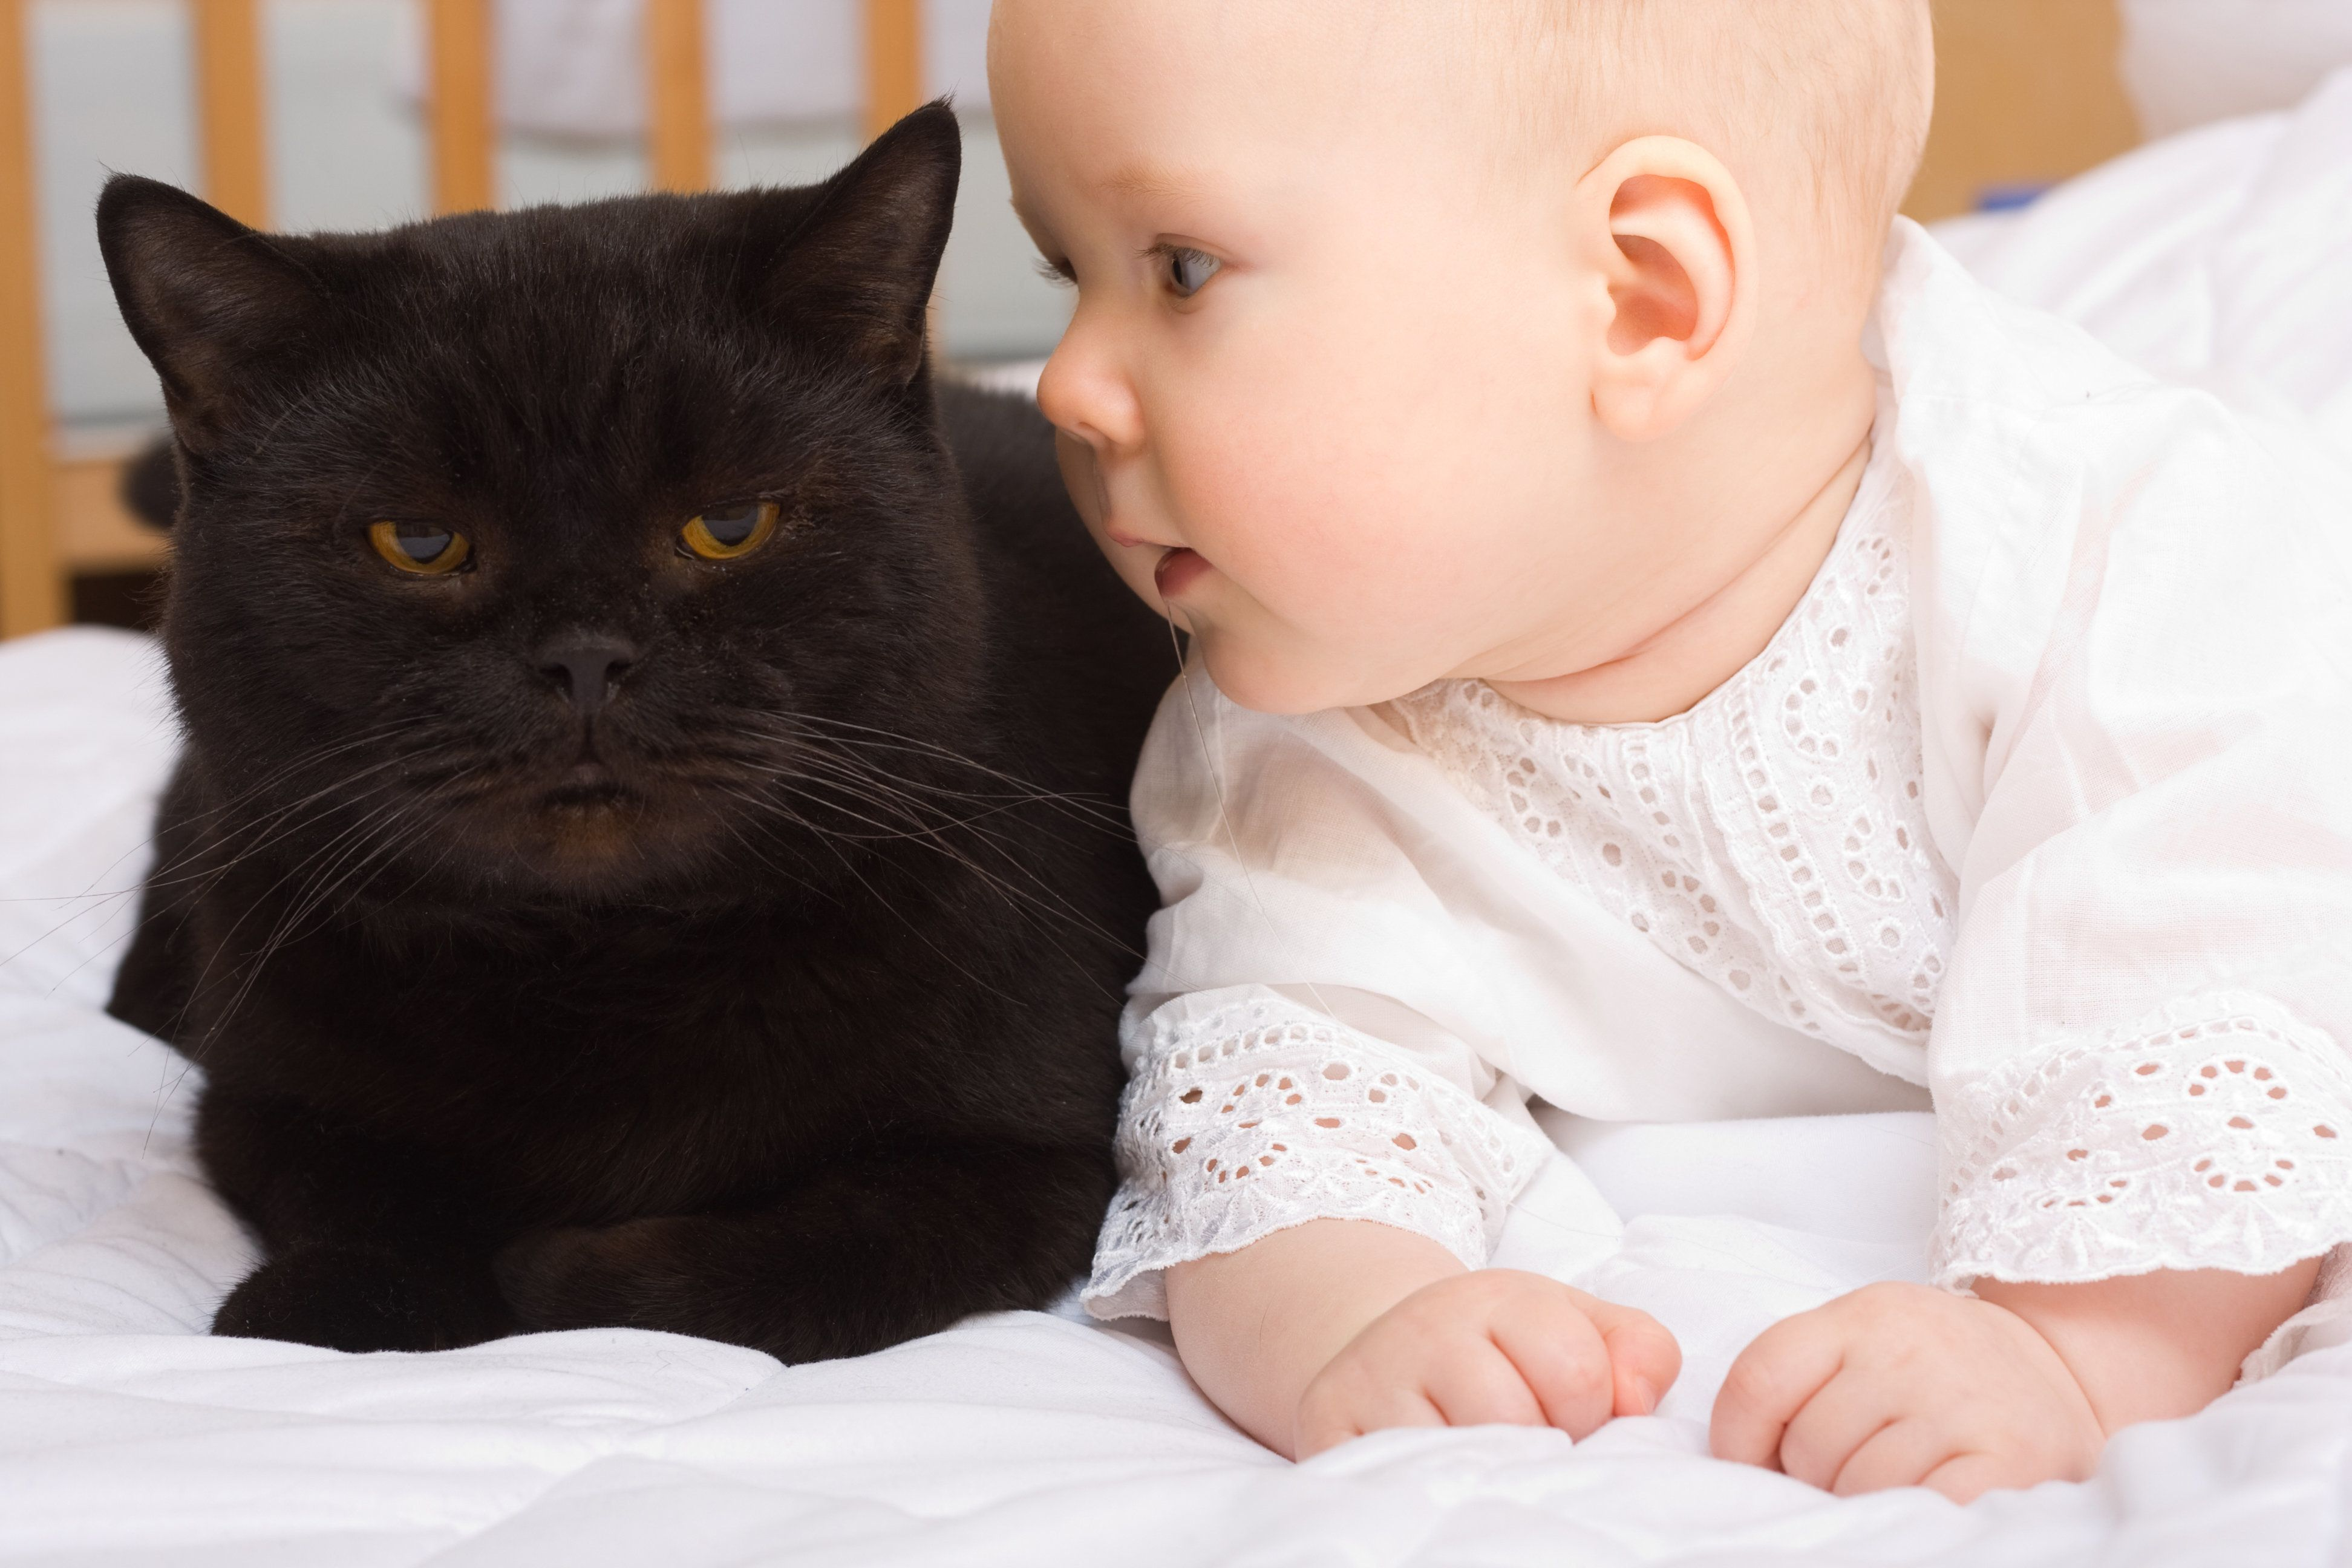 Cats May Protect Newborn Babies Against Asthma, New Study